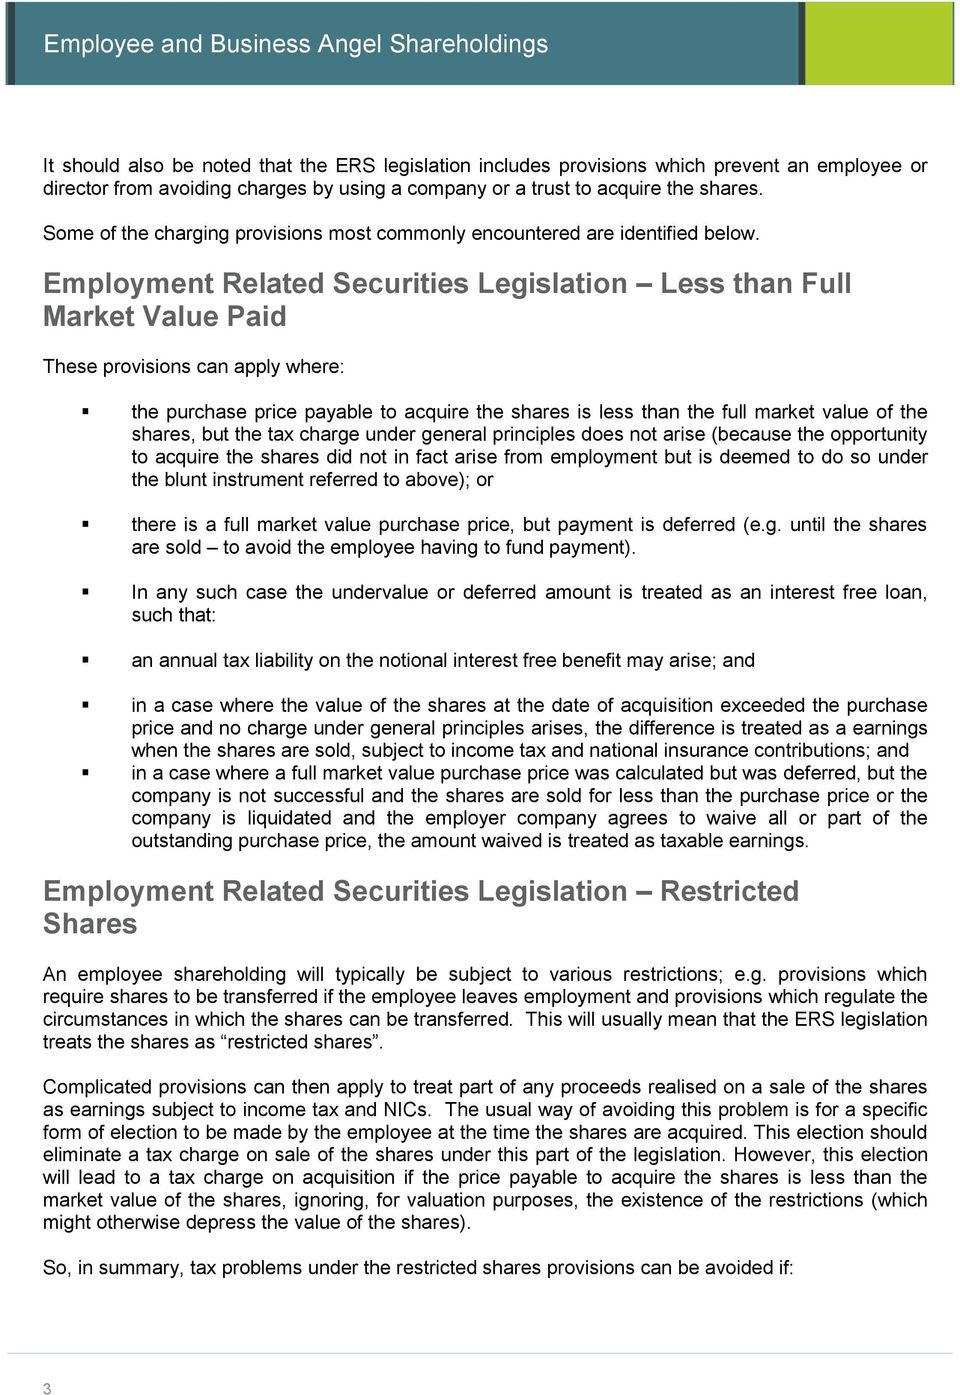 Employment Related Securities Legislation Less than Full Market Value Paid These provisions can apply where: the purchase price payable to acquire the shares is less than the full market value of the